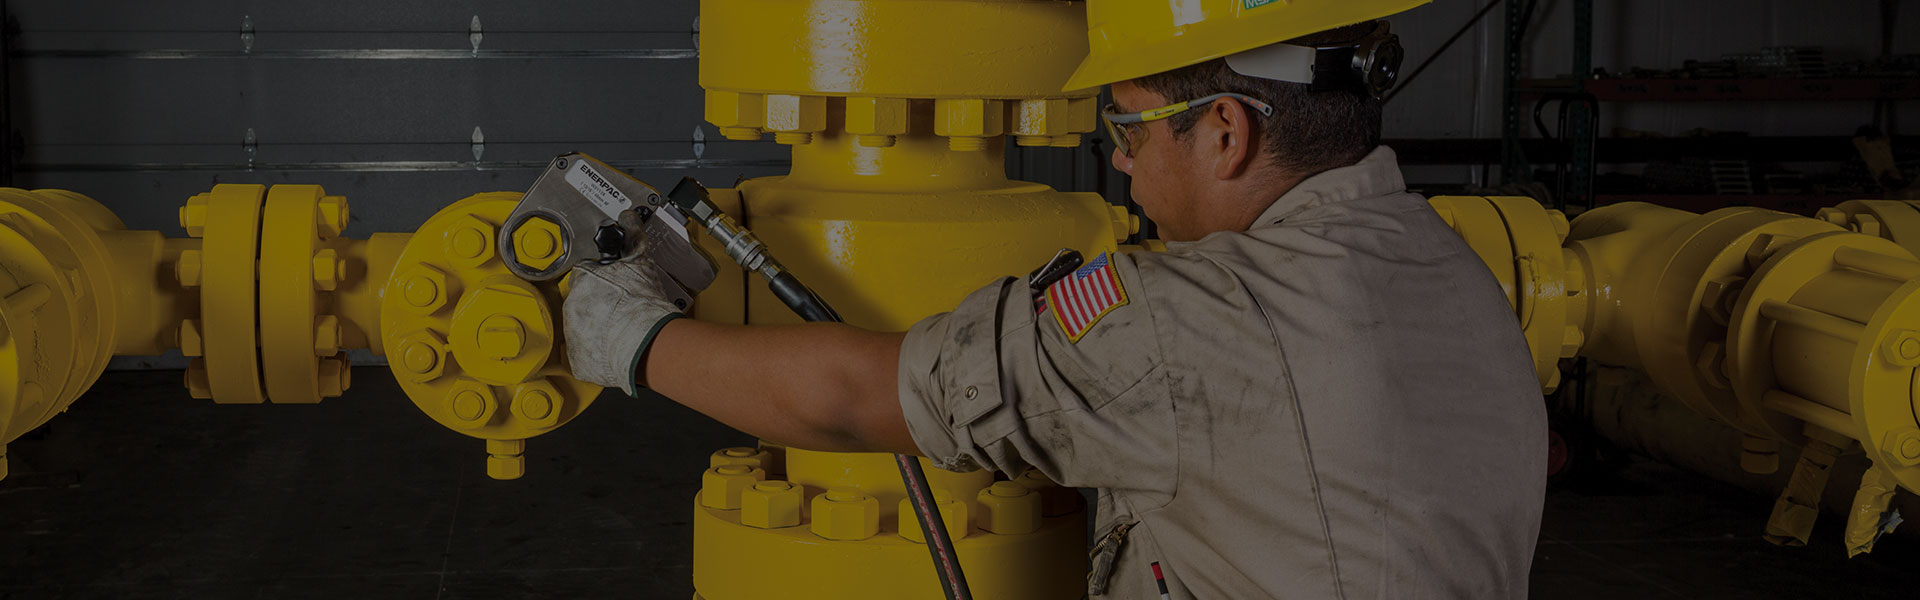 Enerpac | North America | POWERFUL SOLUTIONS  GLOBAL FORCE